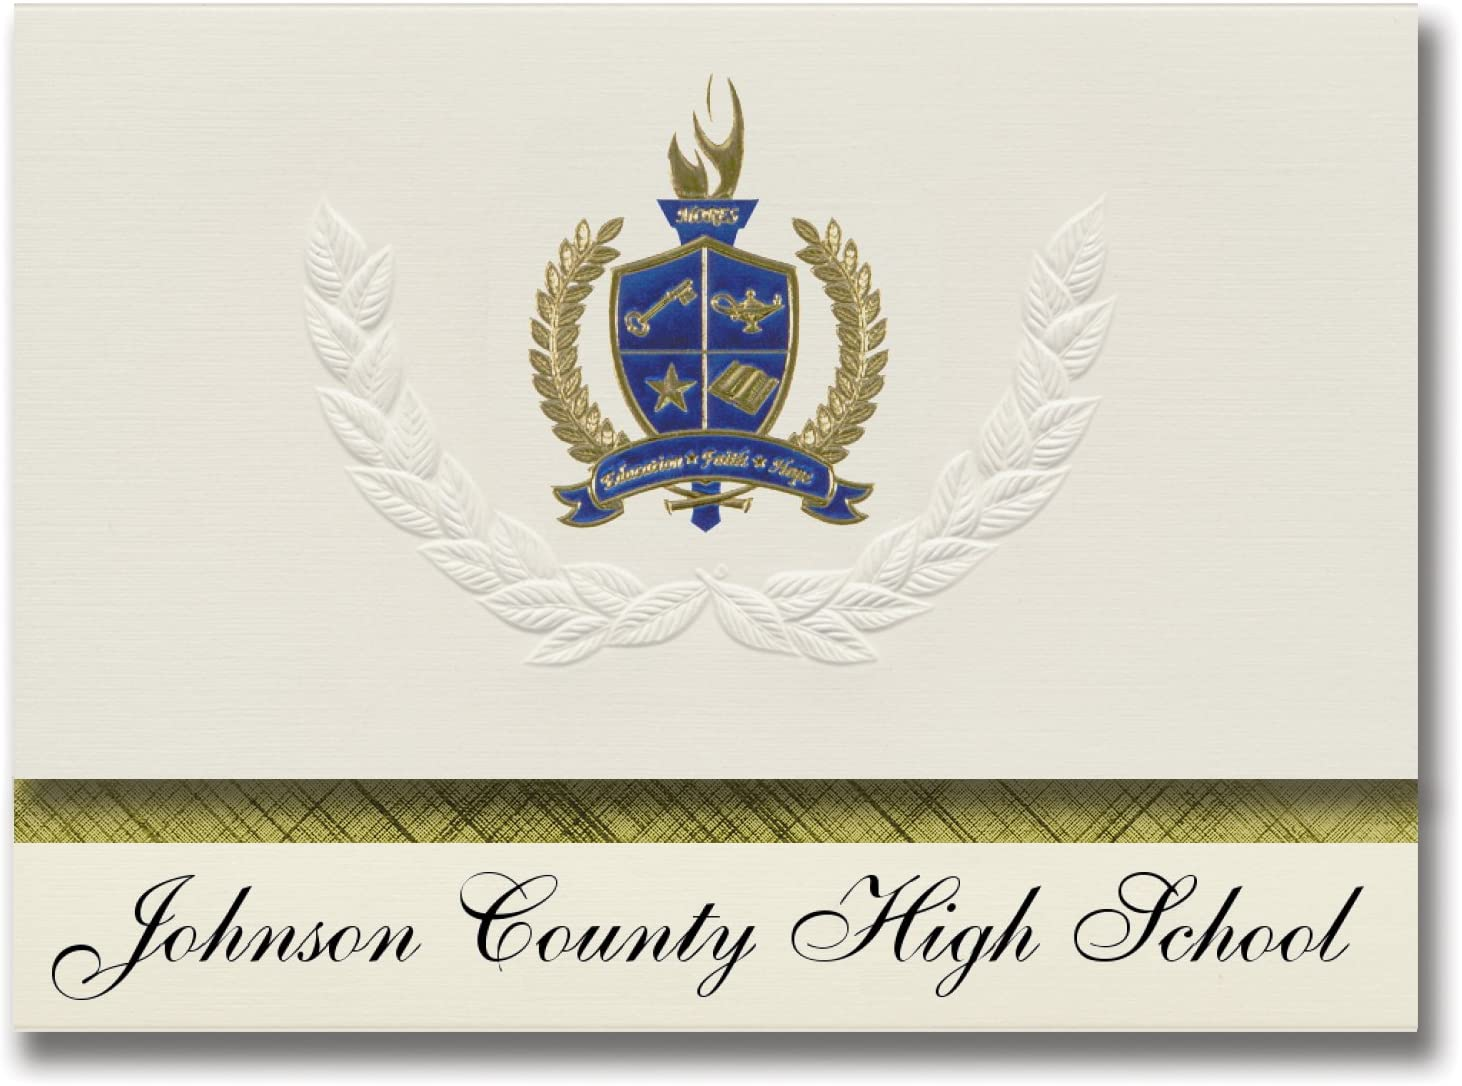 Signature Announcements Johnson County High School (Wrightsville, GA) Graduation Announcements, Presidential style, Basic package of 25 with Gold & Blue Metallic Foil seal